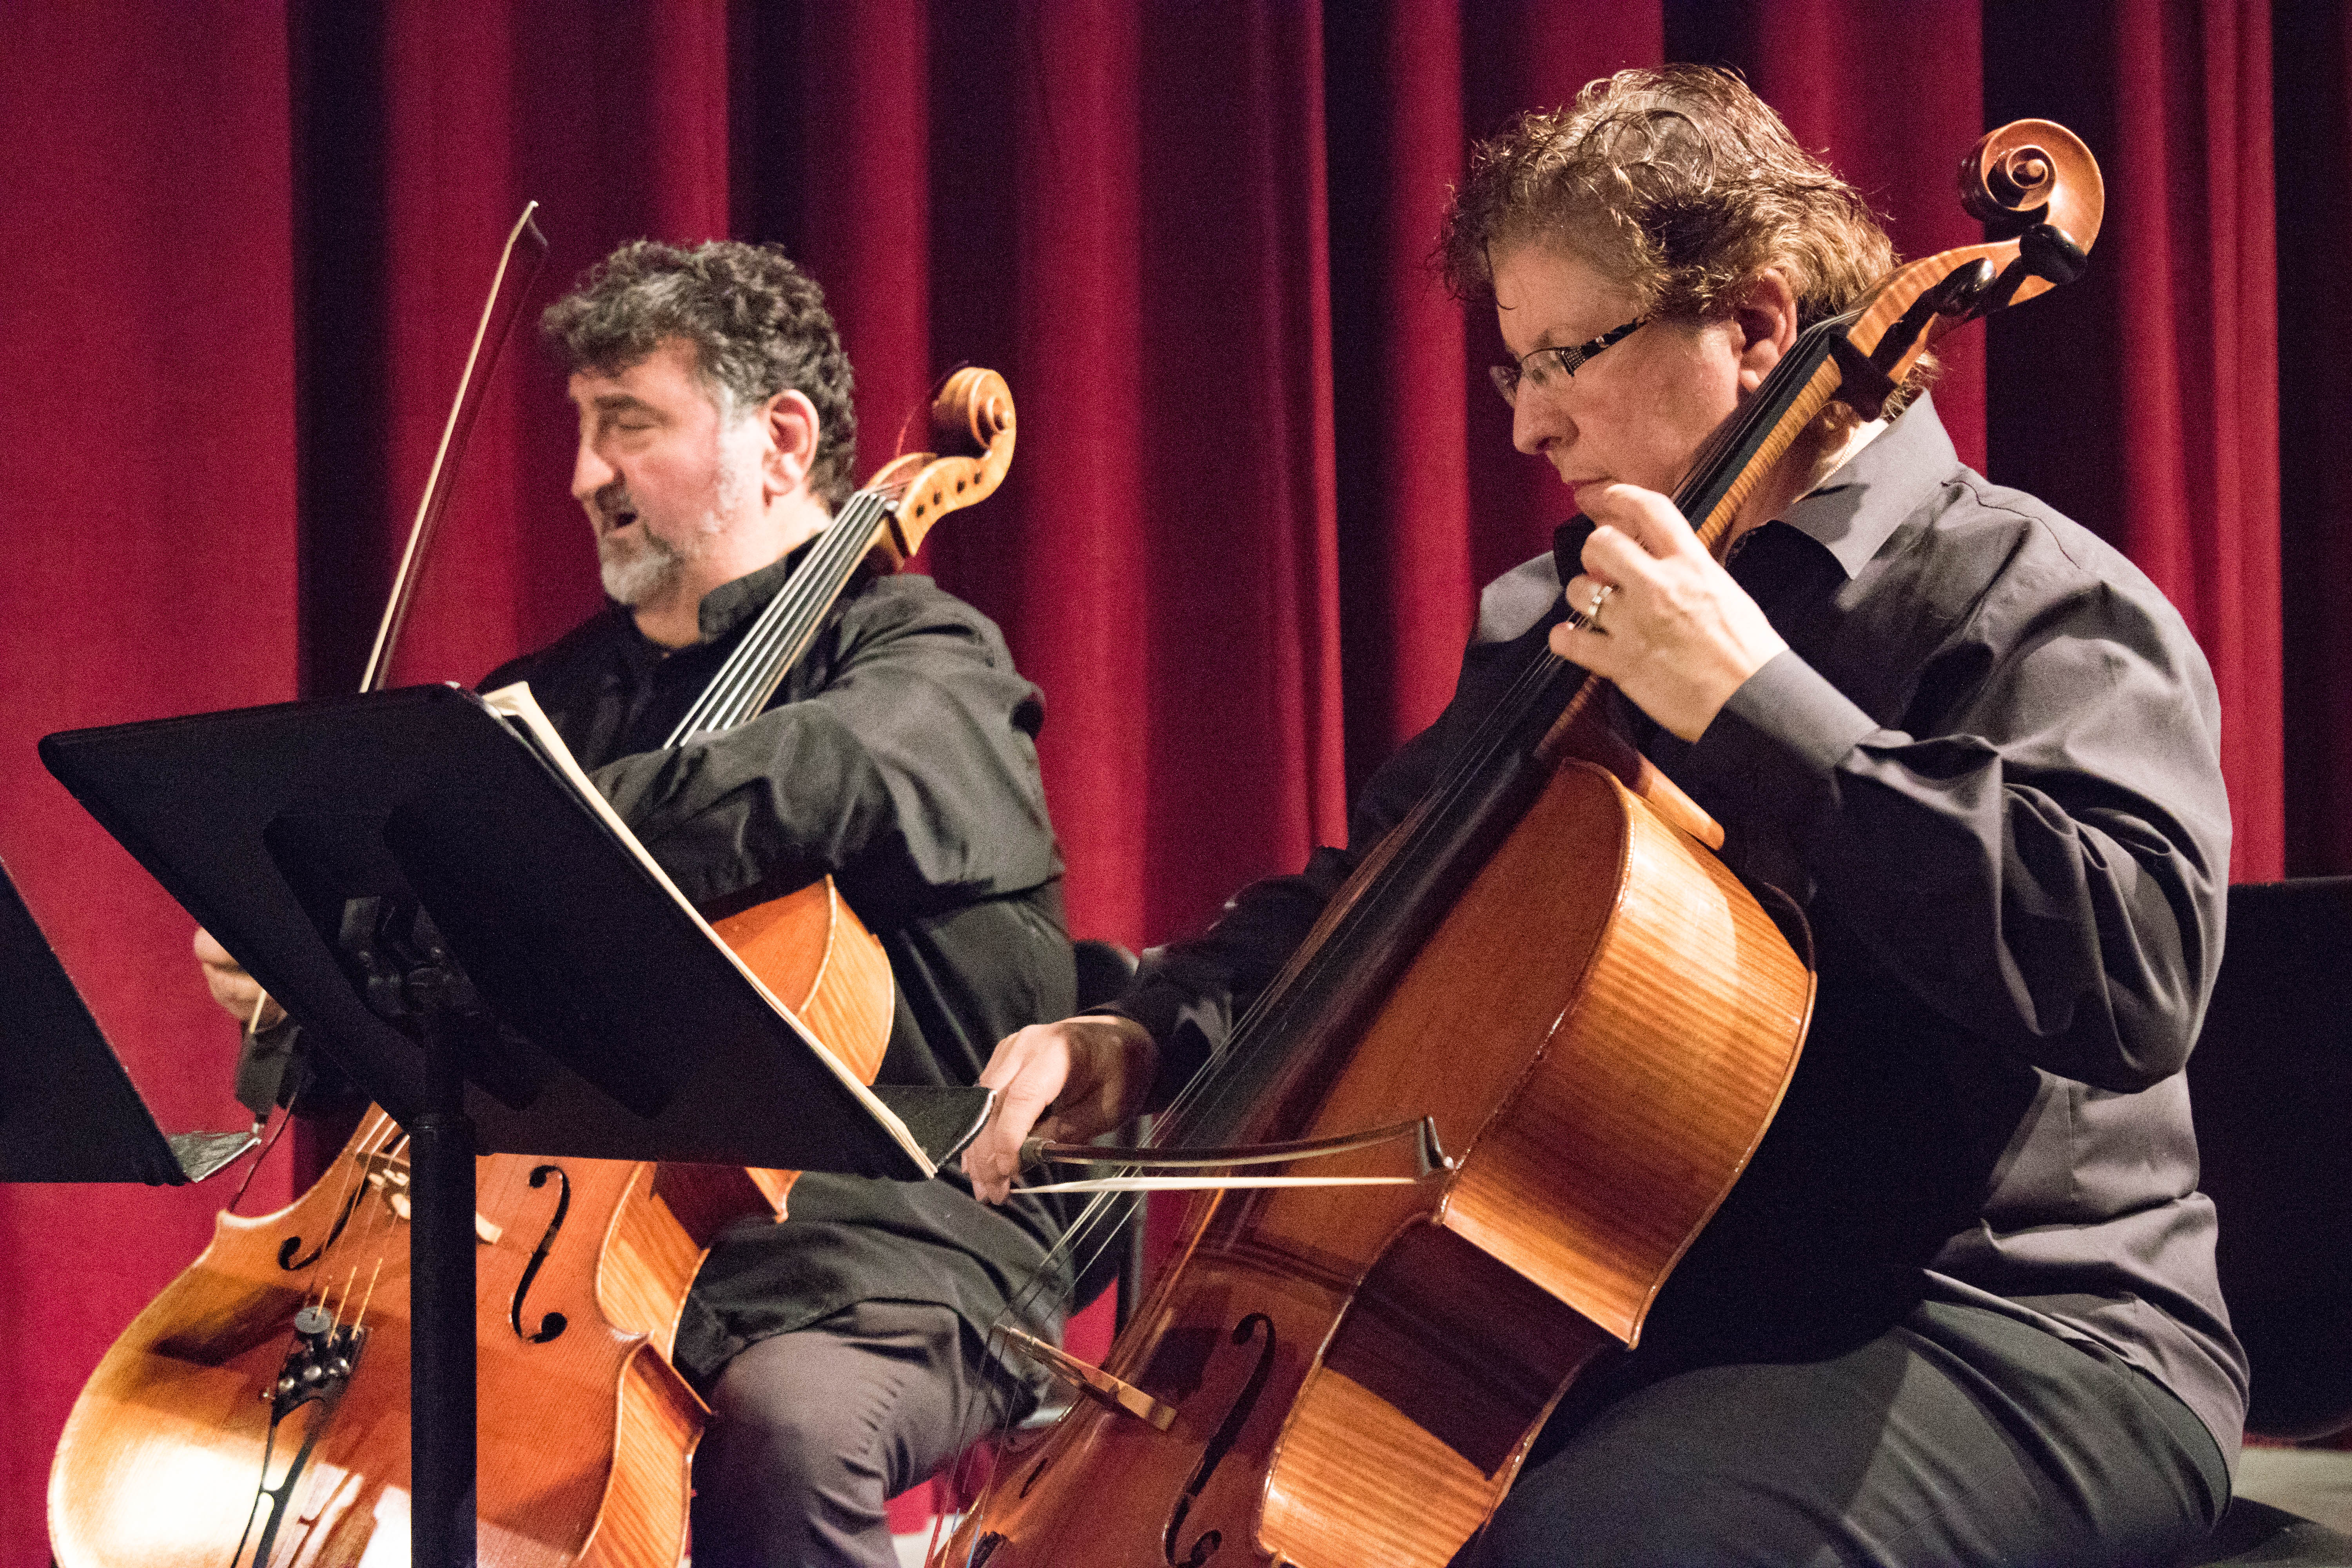 Strings and bows put on a show